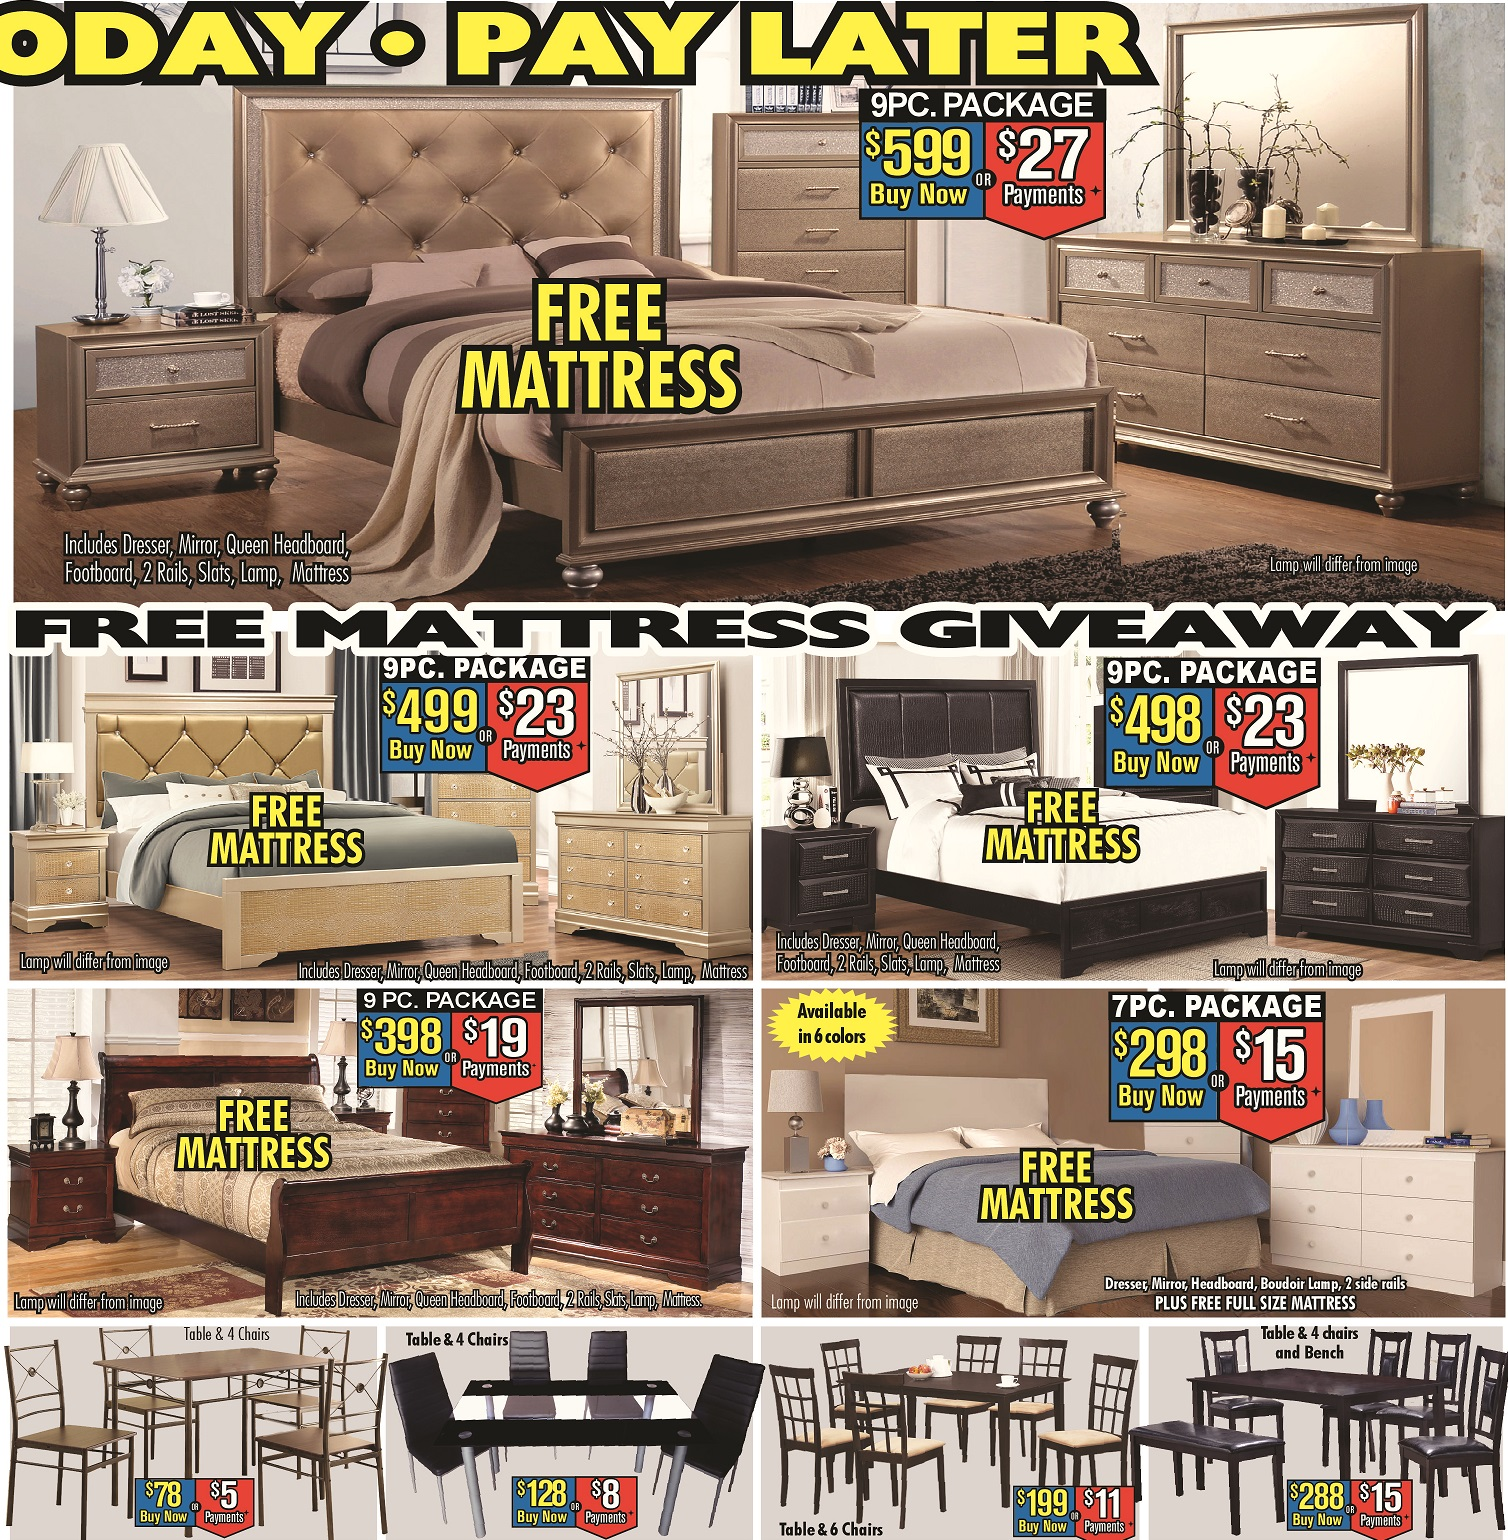 Furniture Stores With Prices: Price Busters Discount Furniture, Essex Maryland (MD